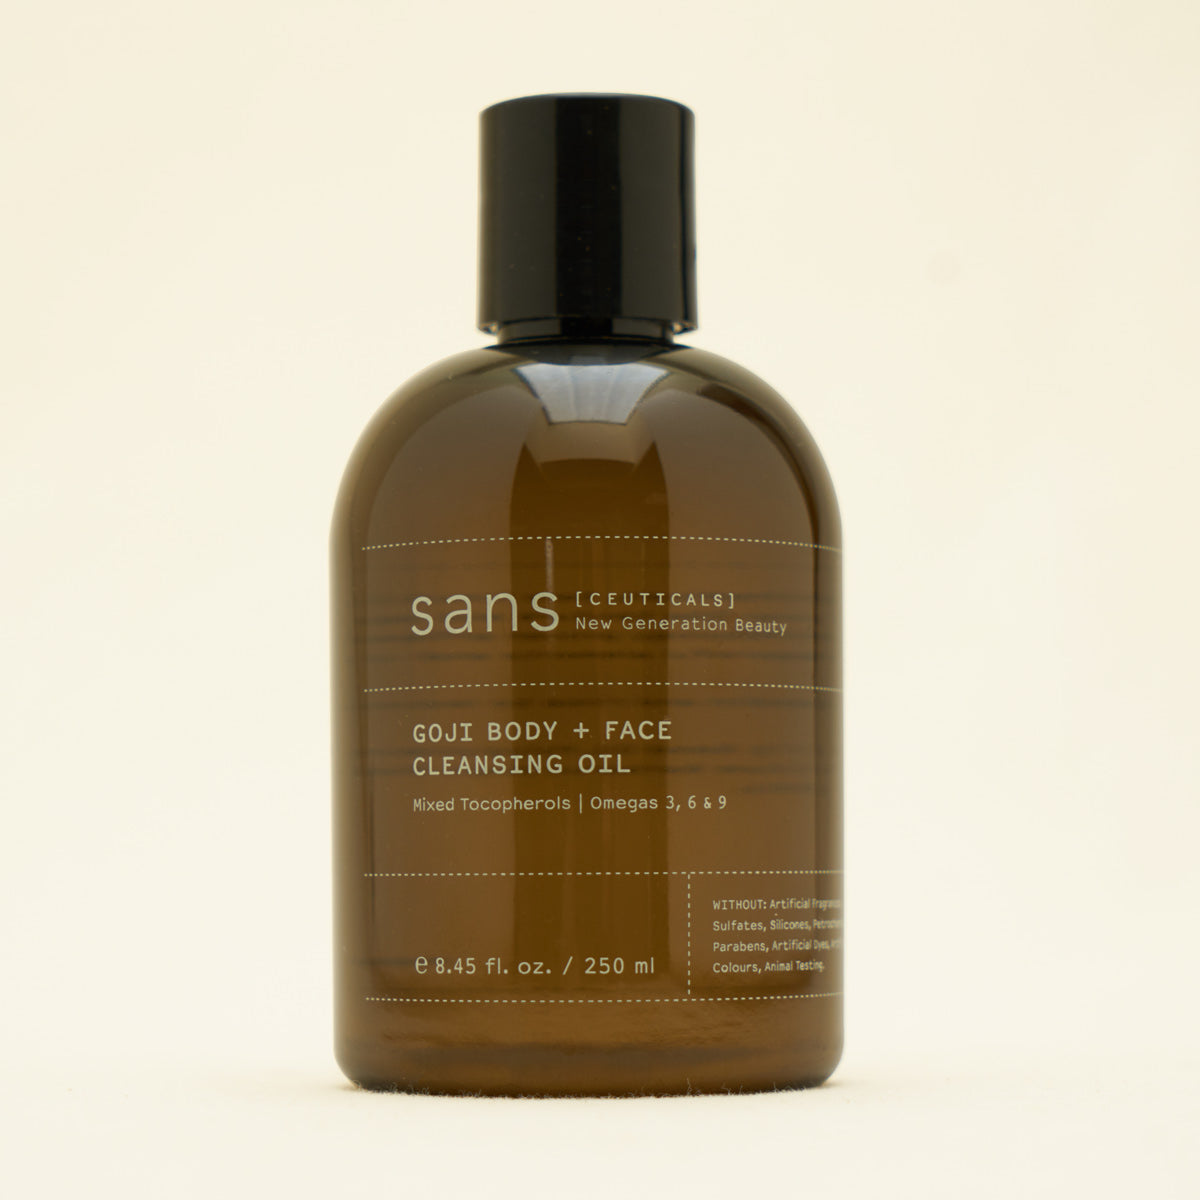 Sans [Ceuticals] - Goji Body + Face Cleansing Oil